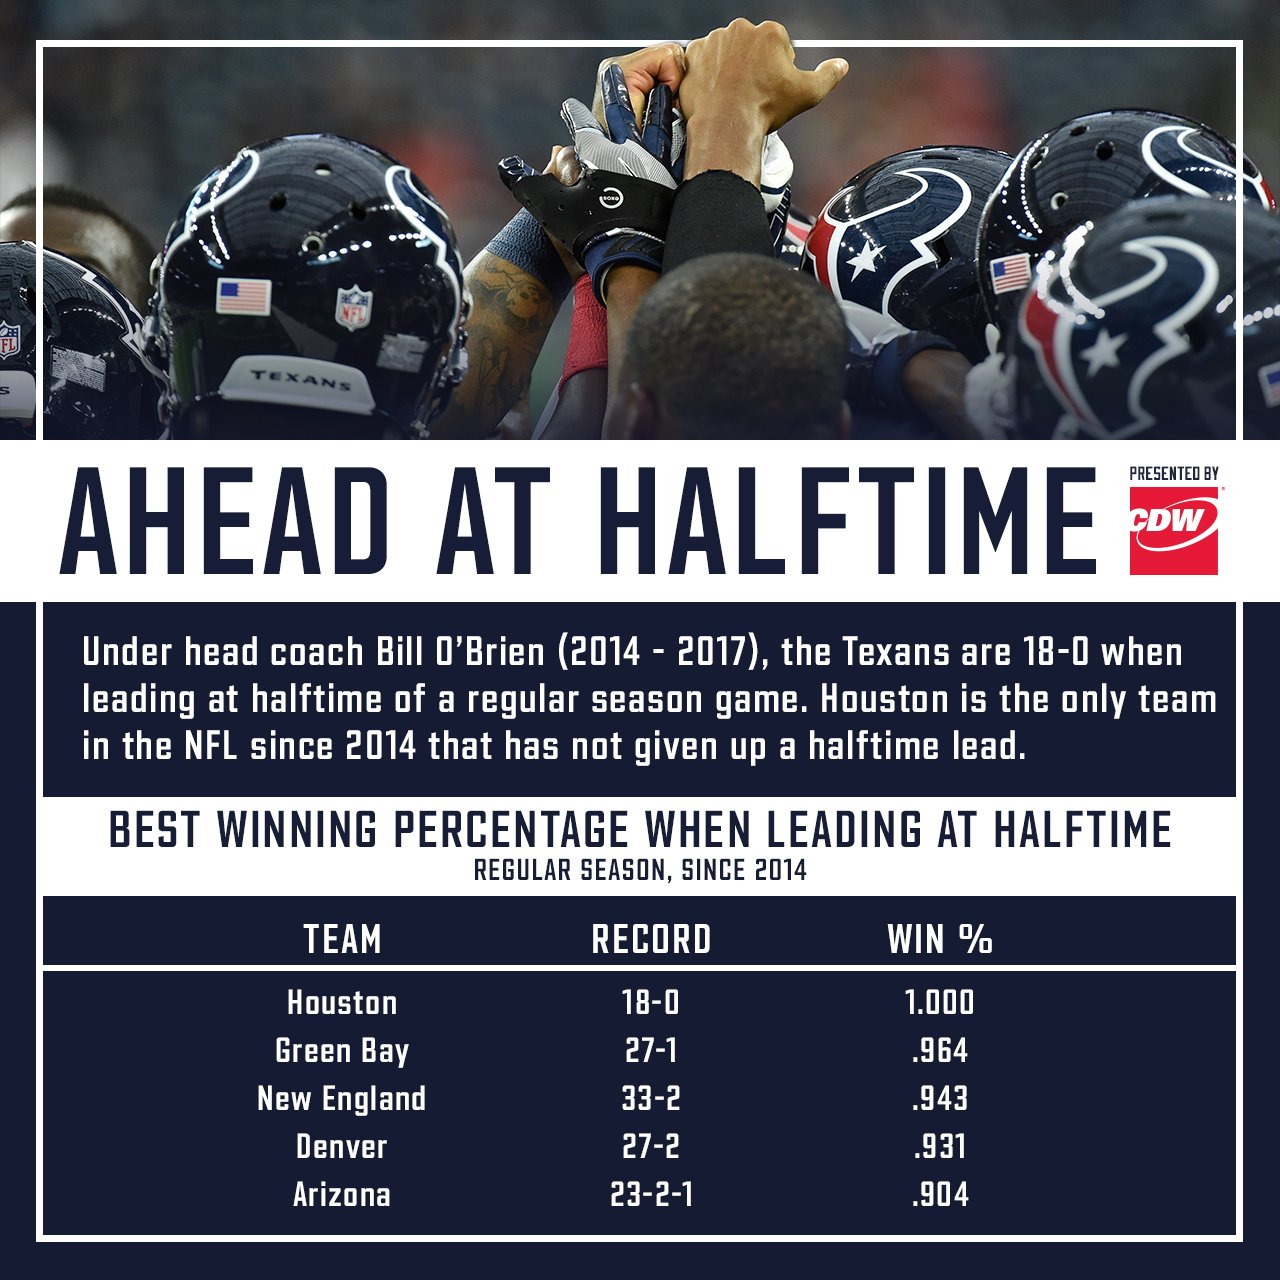 Get ahead, stay ahead.  Check out this week's @CDWCorp #Texans infographic. https://t.co/poiY29m1e6